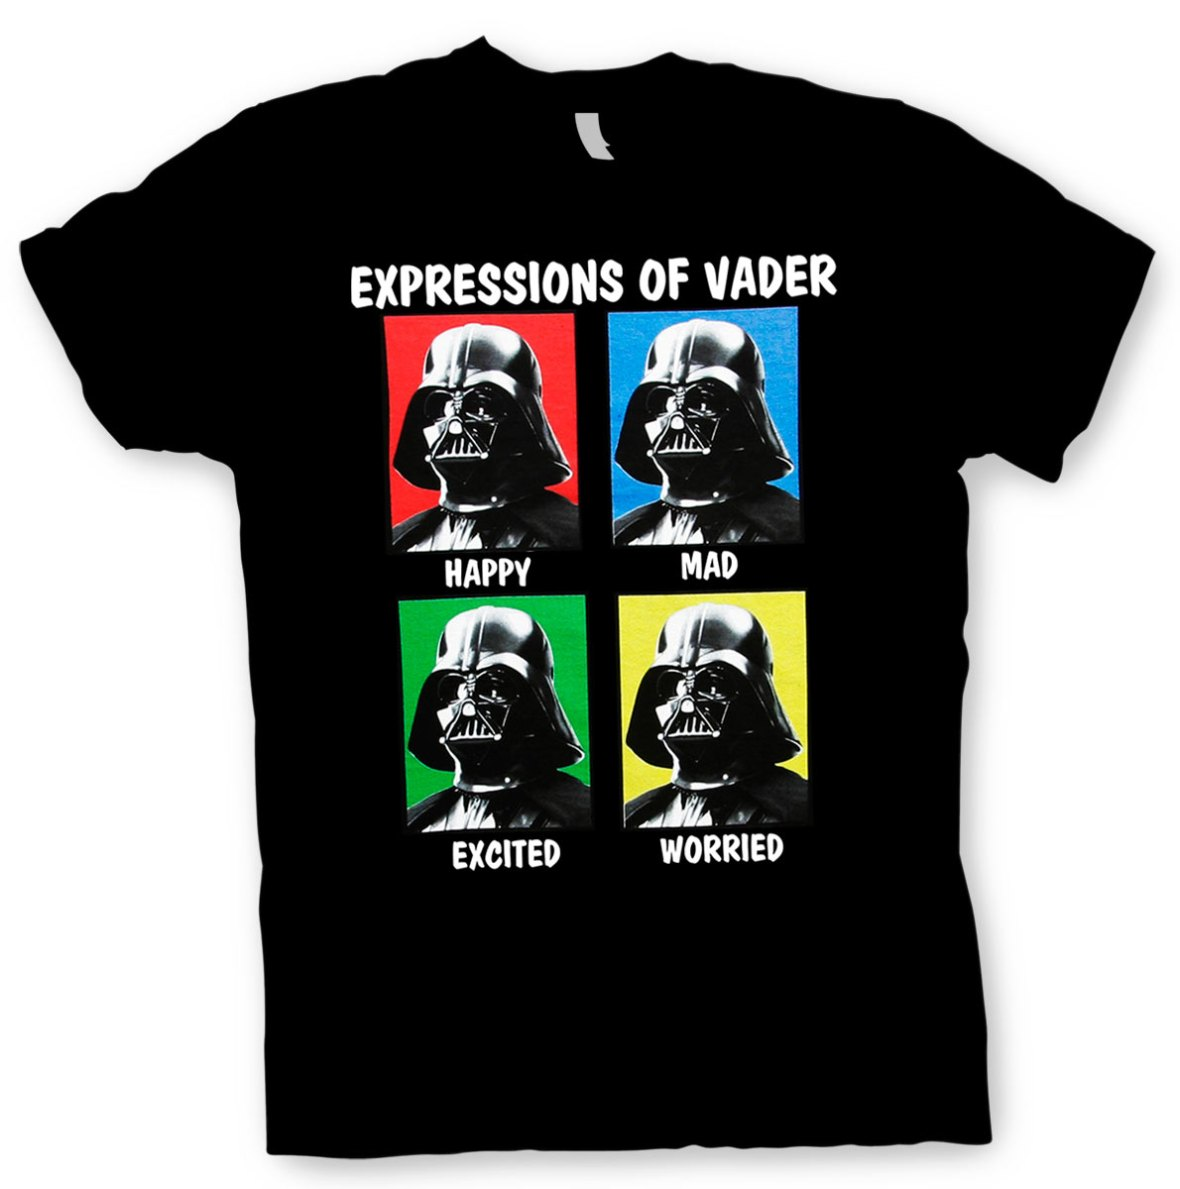 Camiseta Expressions of Darth Vader